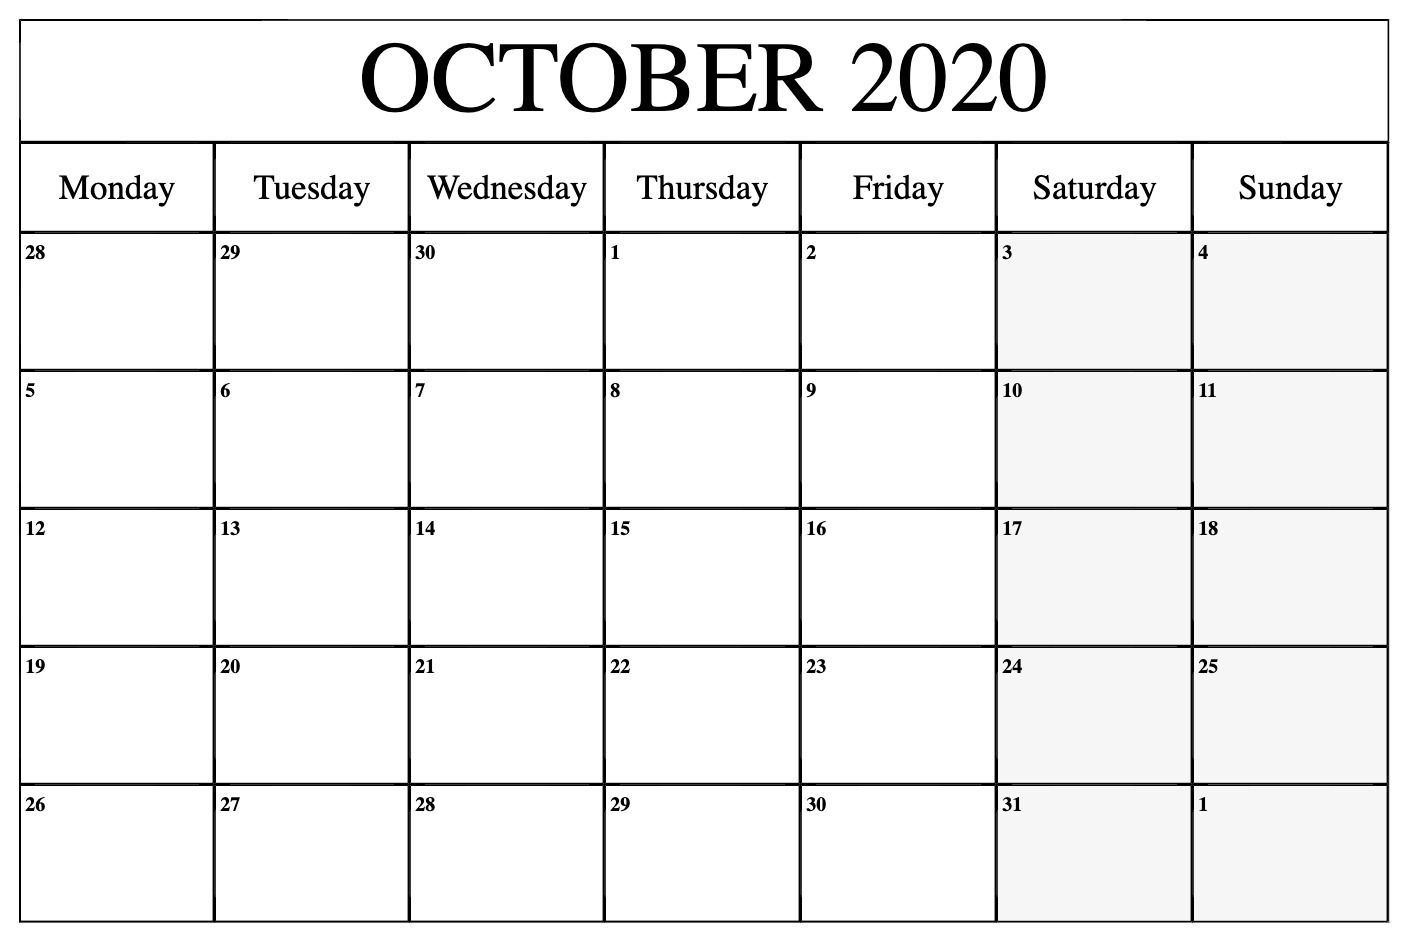 000 Formidable 2020 Calendar Template Excel Image  Microsoft Editable In Format Free DownloadFull